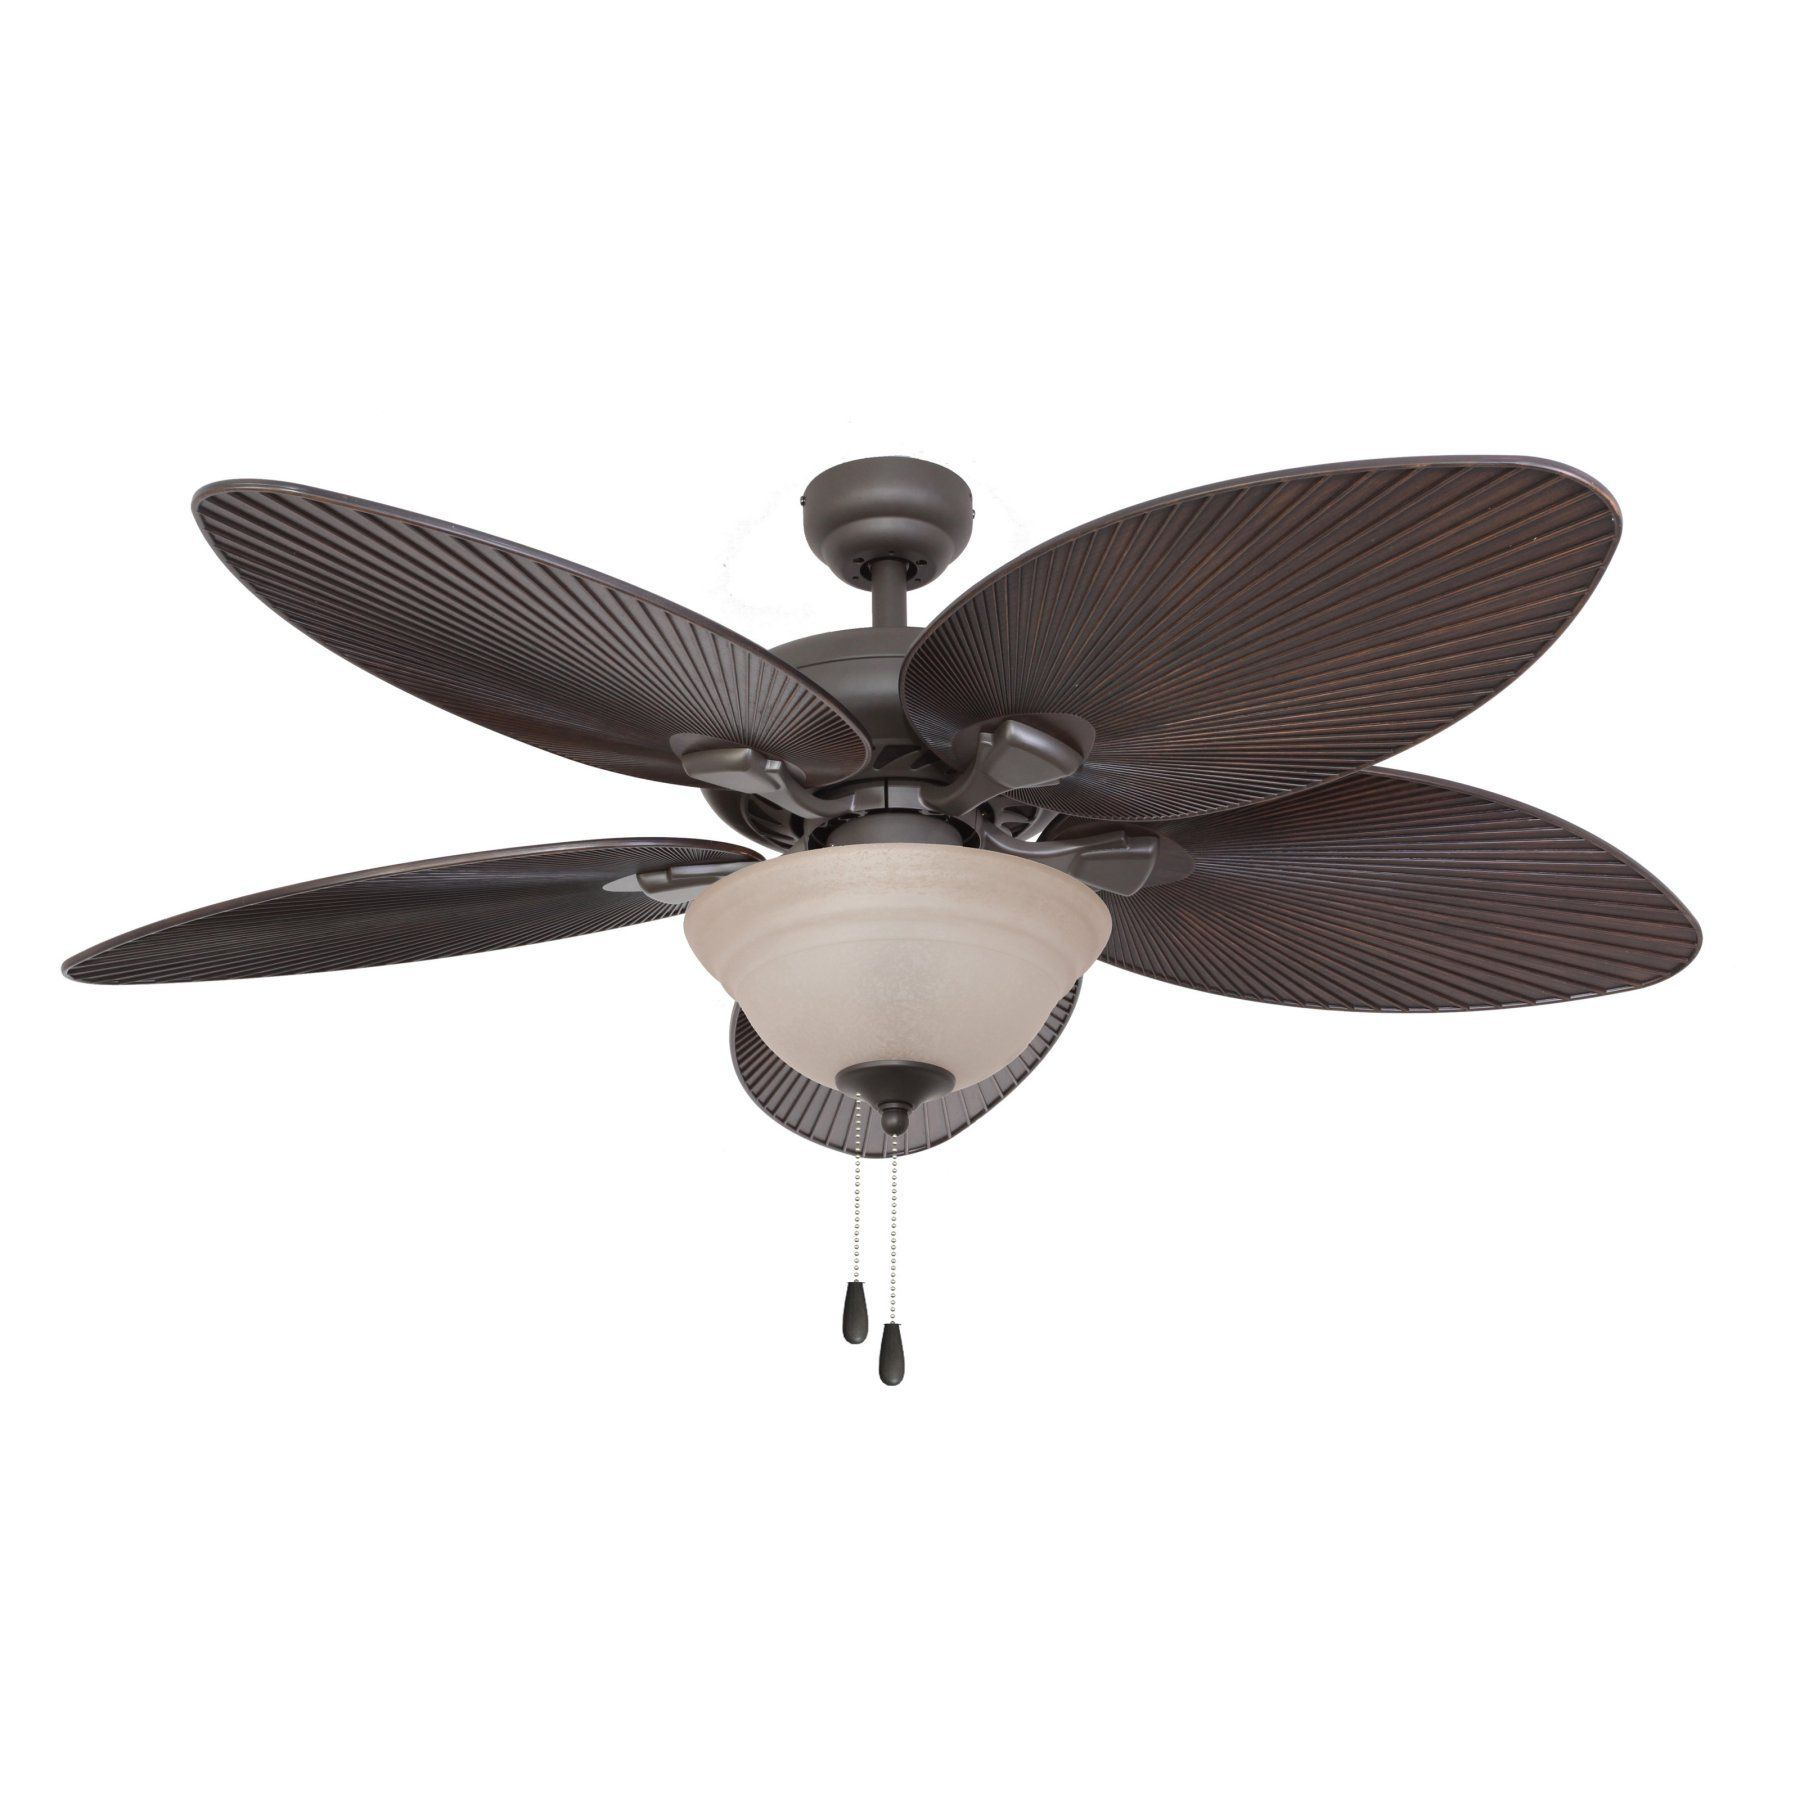 Prominence Home Cane Garden Bay 52 in Indoor Ceiling Fan with Light